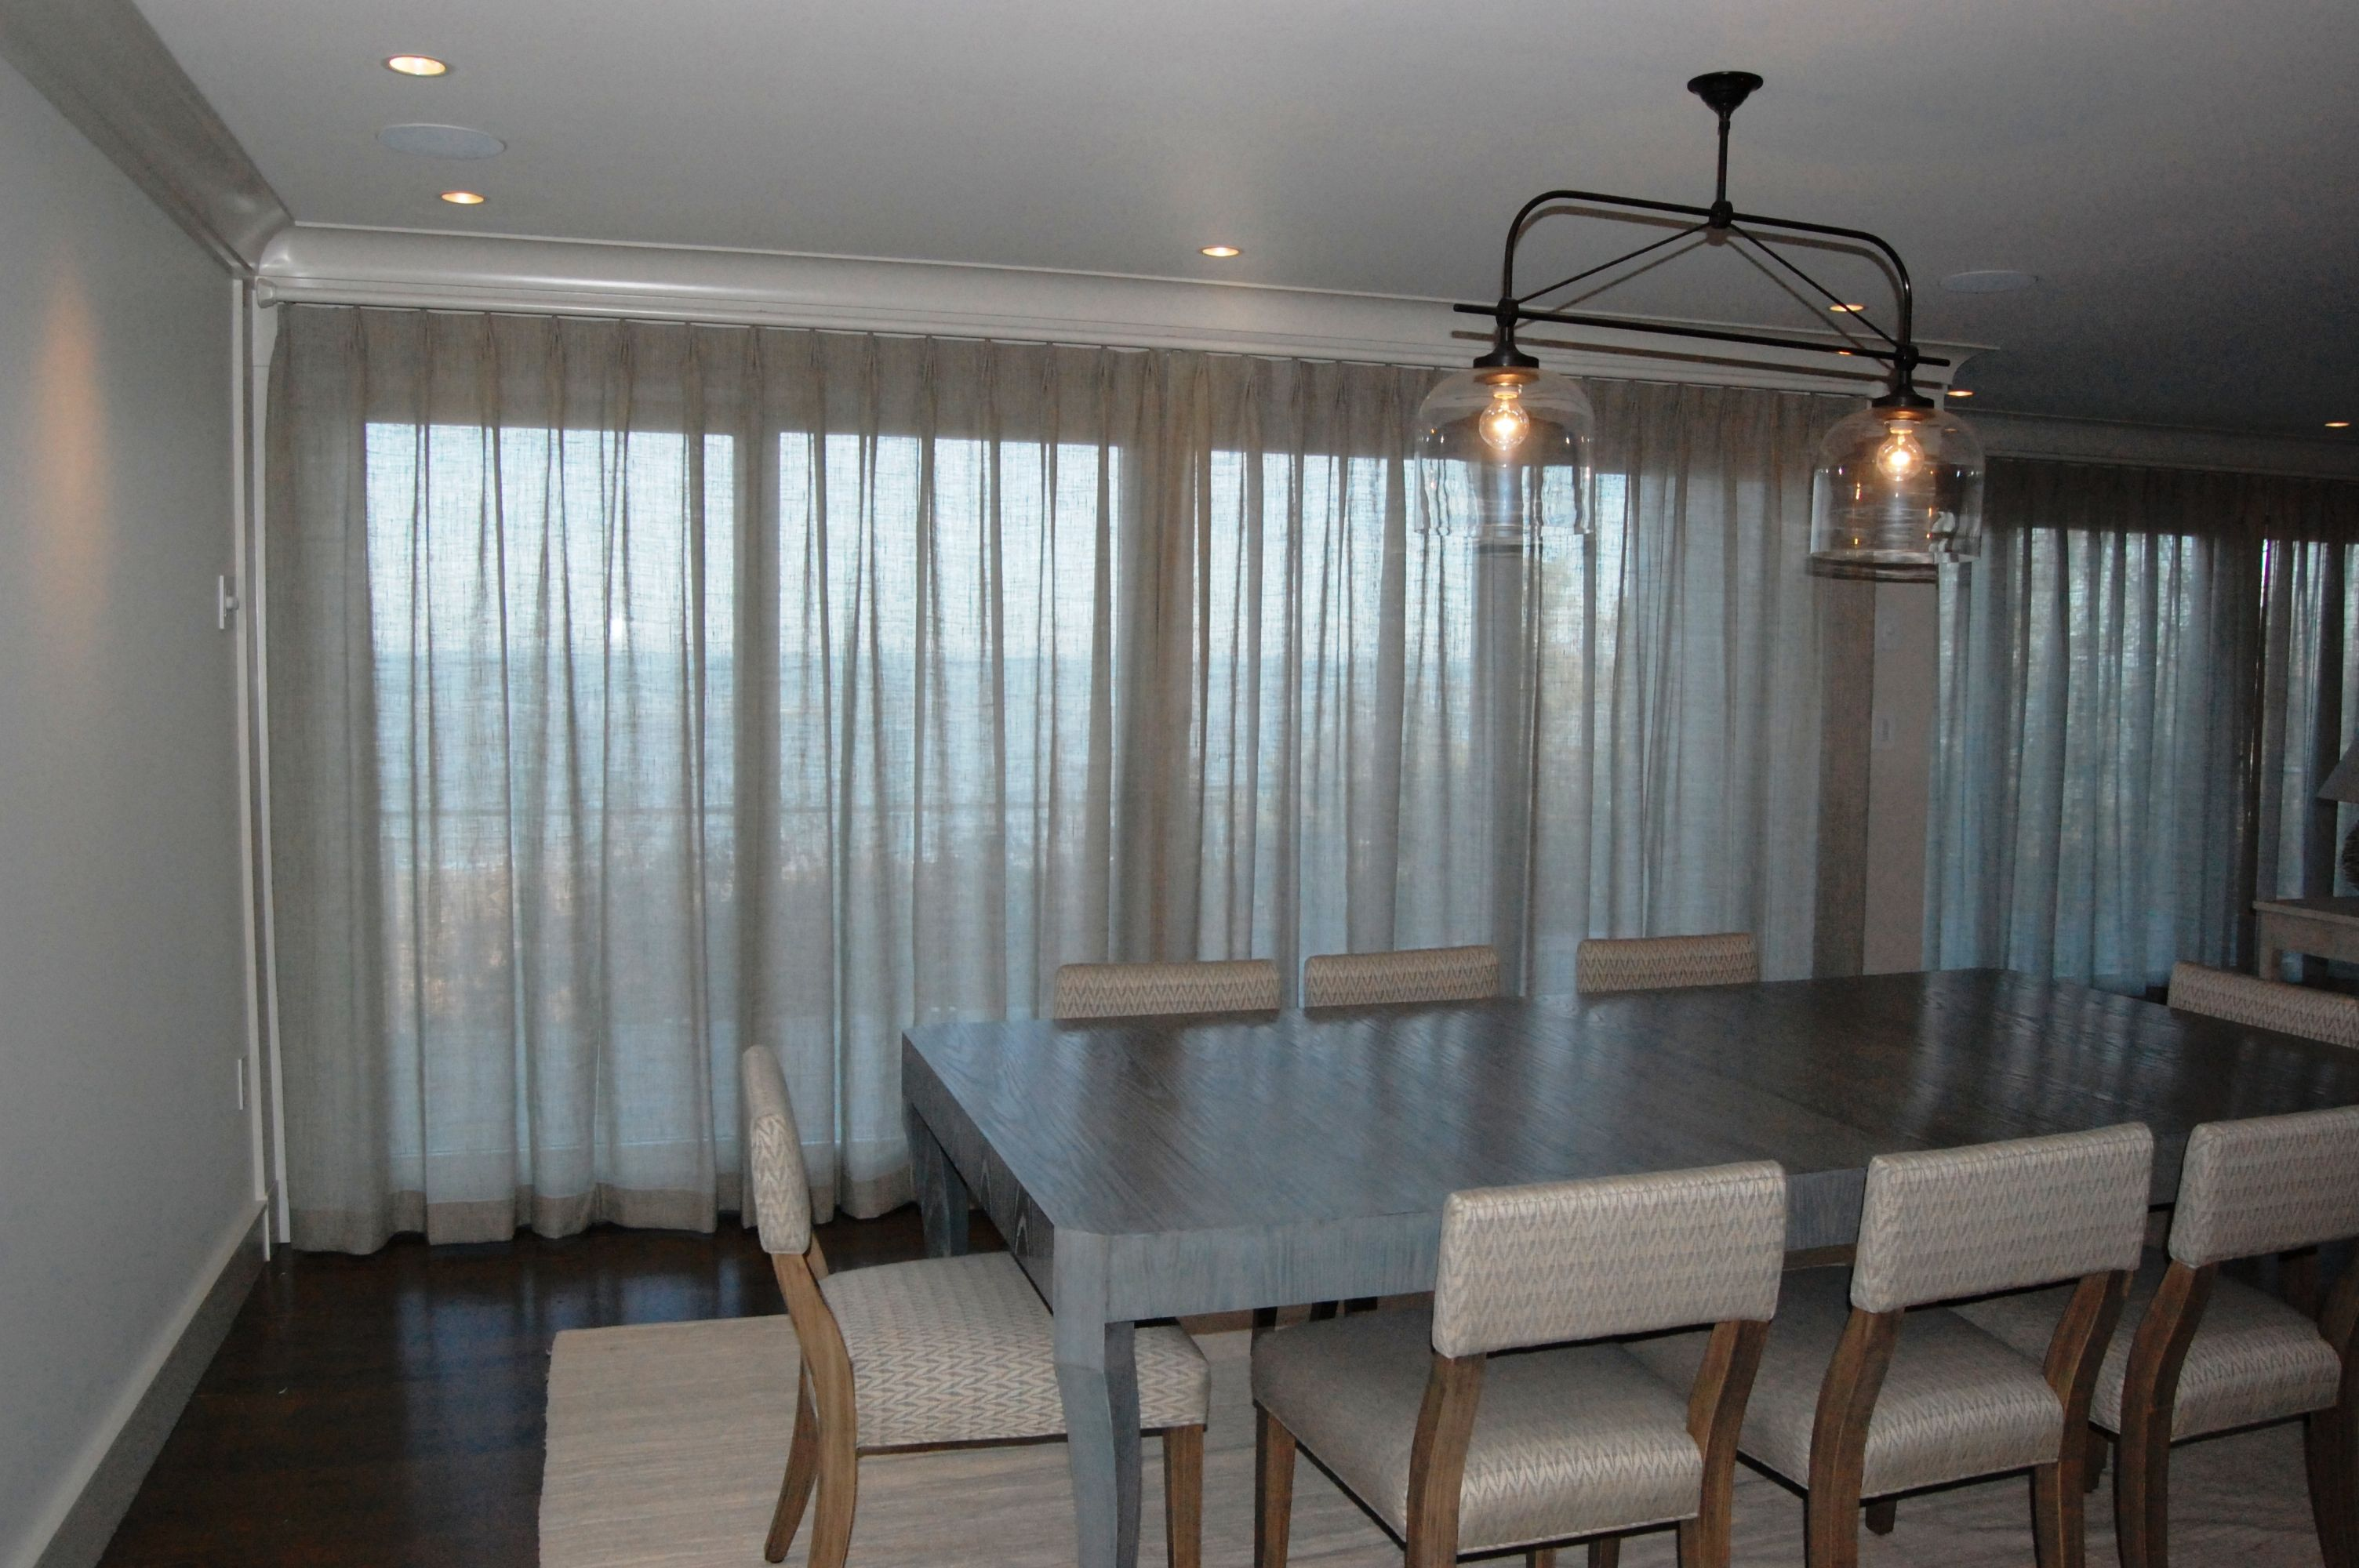 living blinds new fashions ideas decor wa sales coverings in room budget accent and wall window vancouver shutters